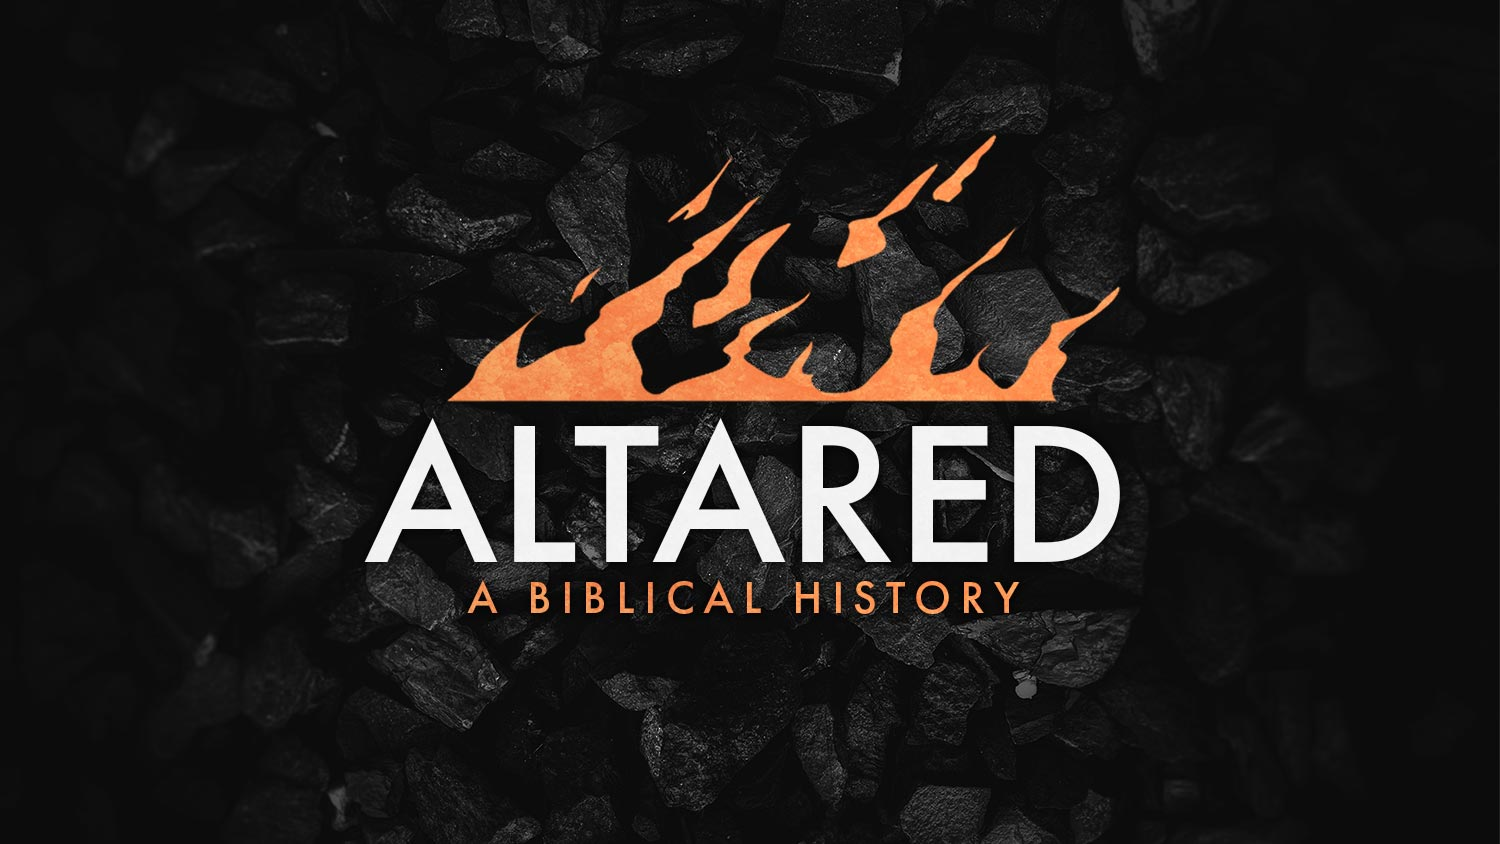 Altared: A Biblical History